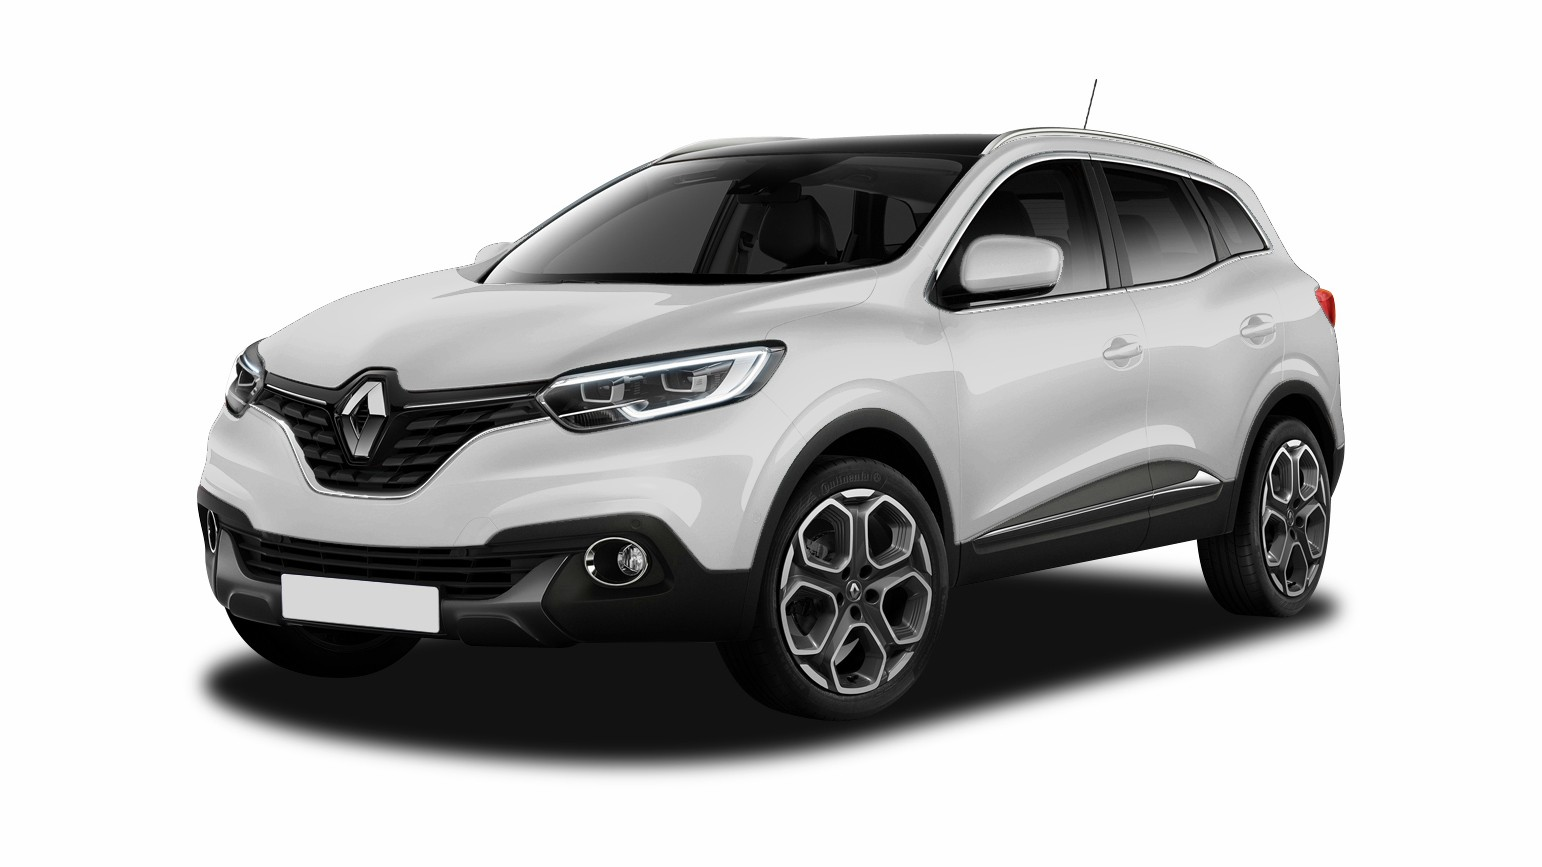 renault kadjar 4x2 et suv 5 portes diesel 1 5 dci 110 auto bo te automatique ou. Black Bedroom Furniture Sets. Home Design Ideas